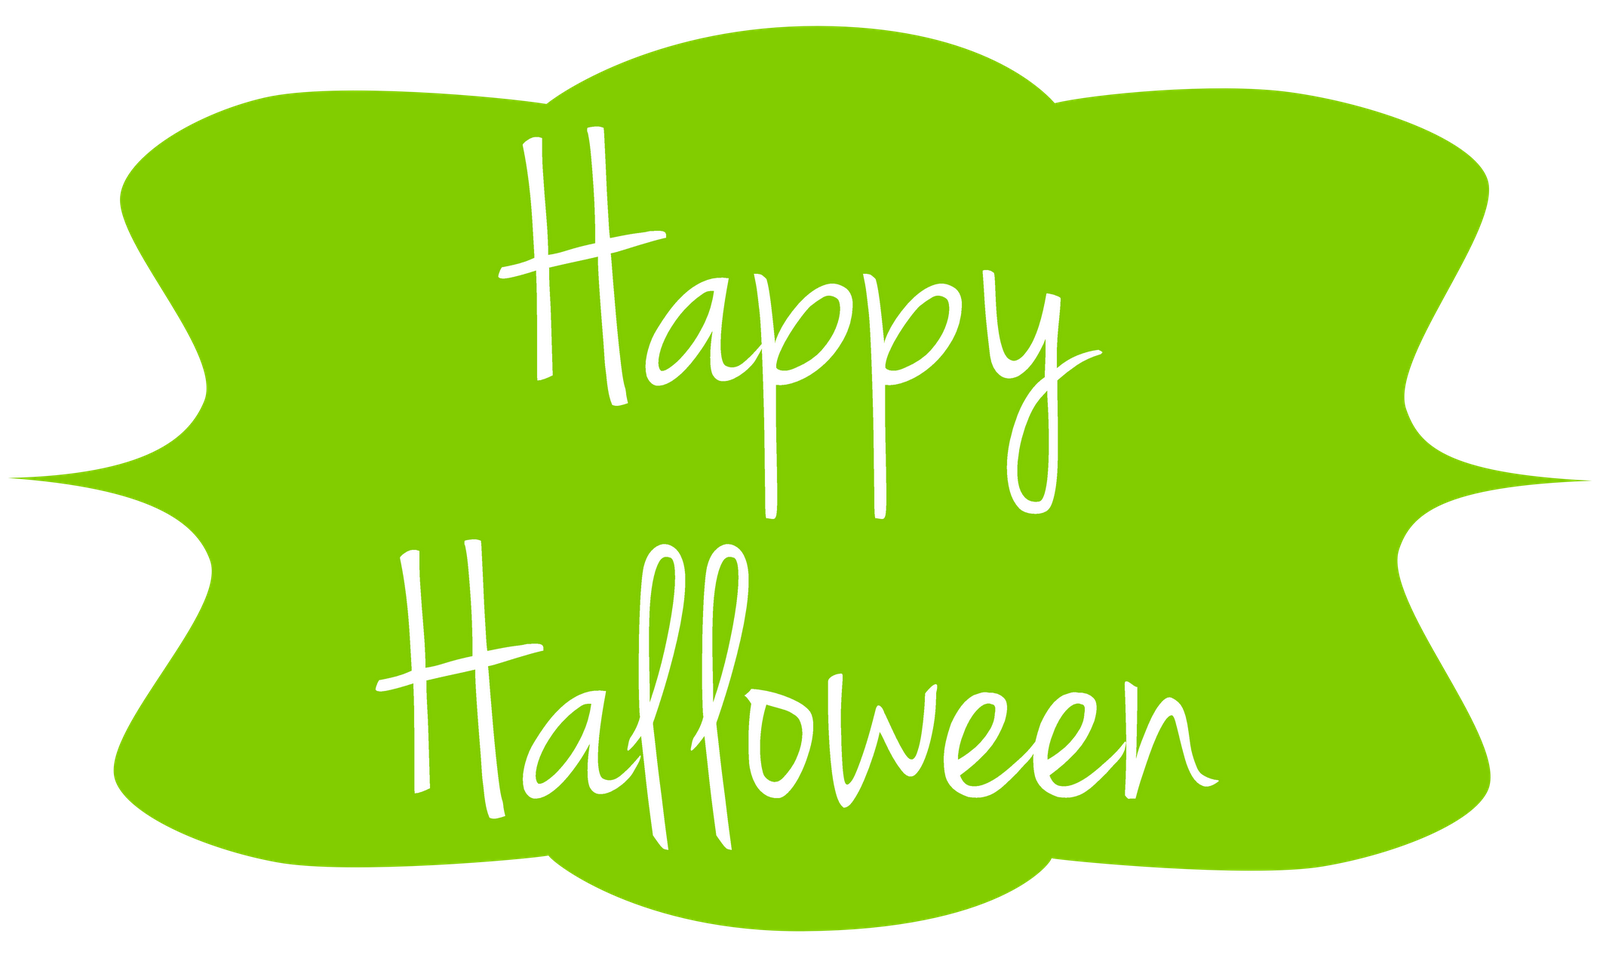 Free clipart for halloween and thanksgiving graphic library stock Free Halloween Green Cliparts, Download Free Clip Art, Free Clip Art ... graphic library stock